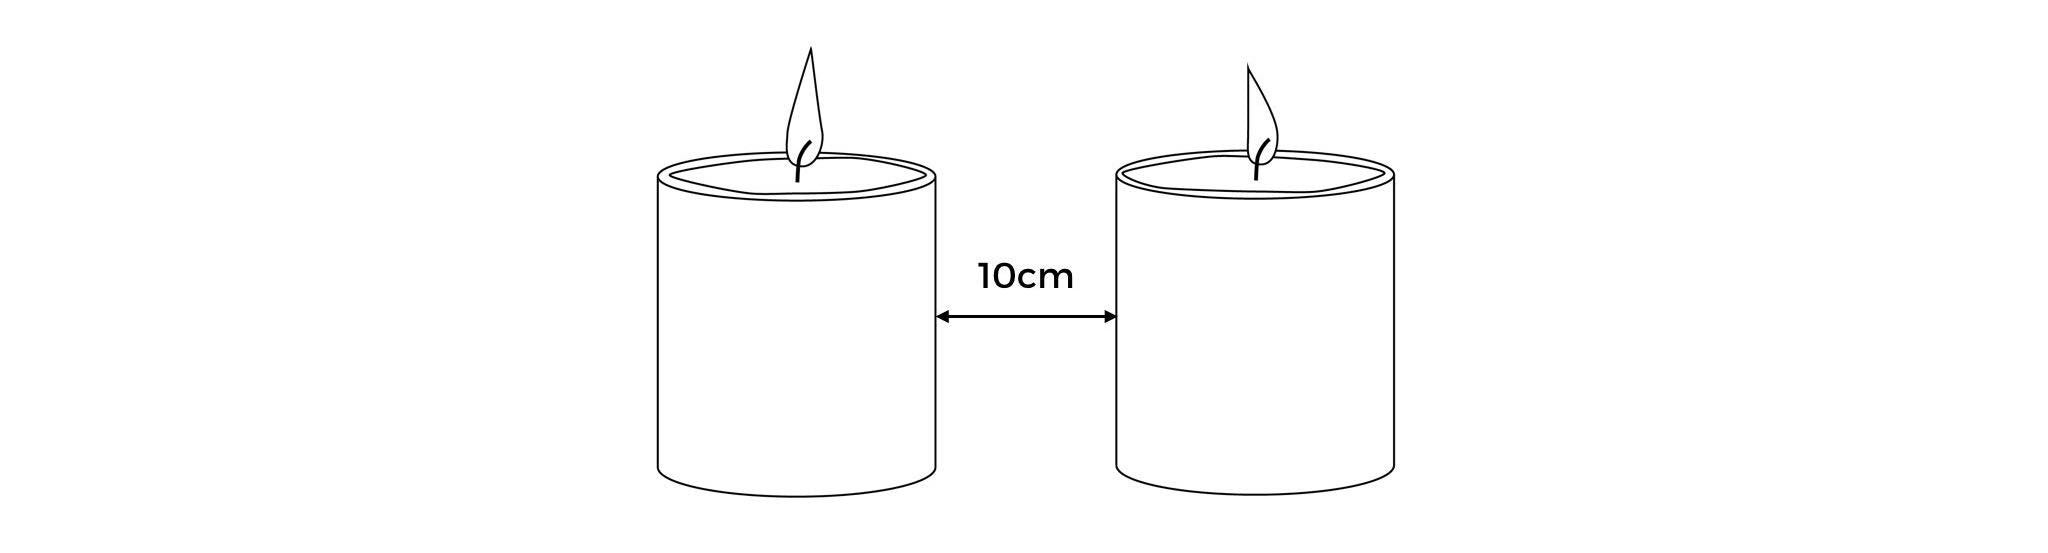 Candle proximity